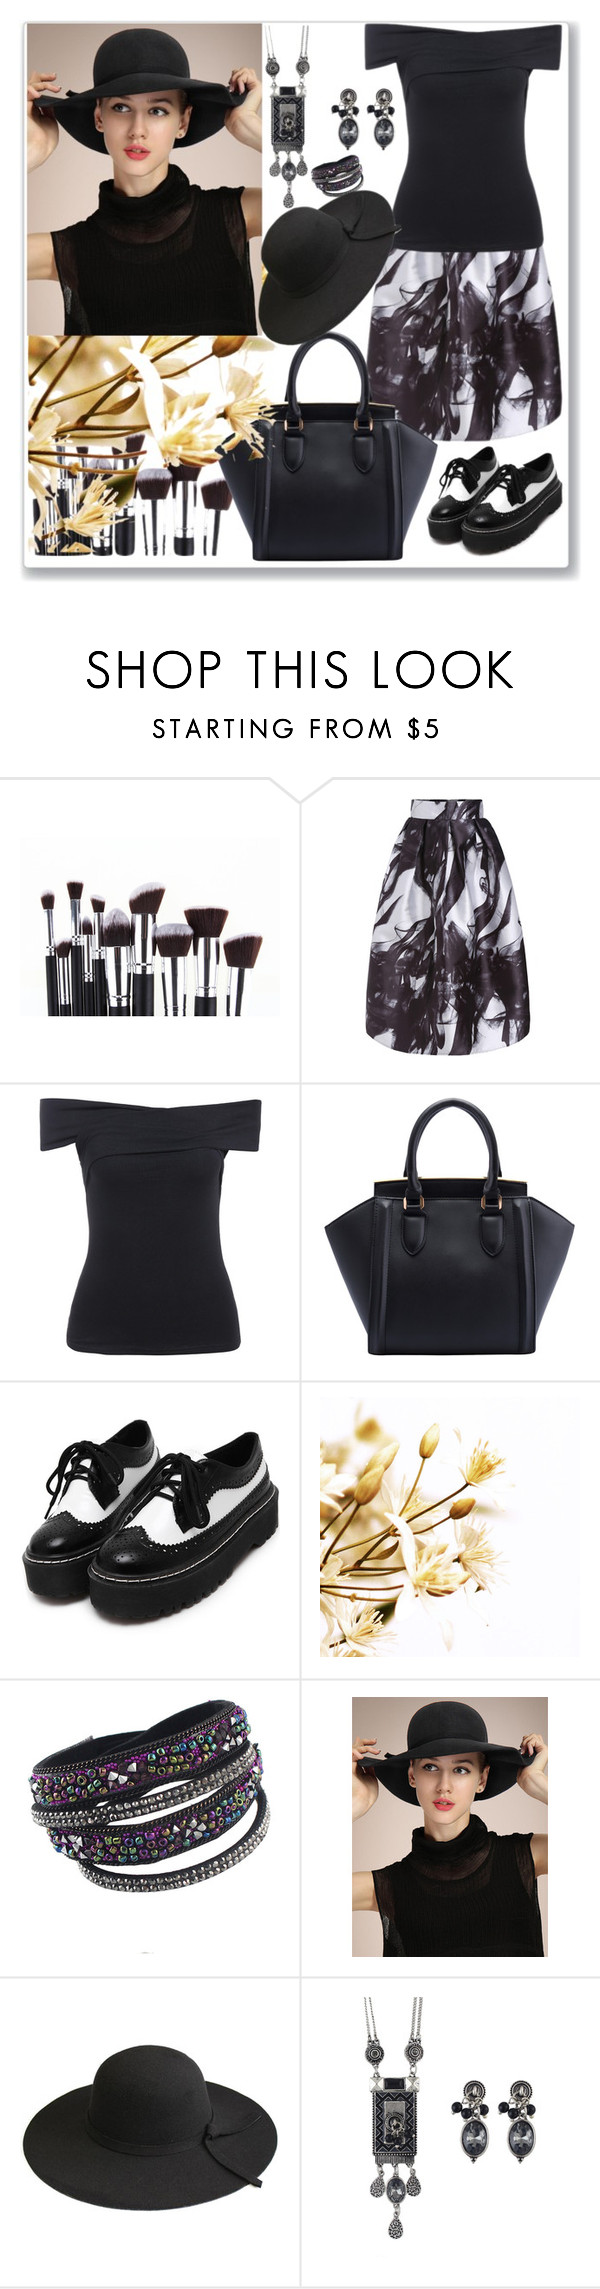 """""""www.romwe.com-XI-2"""" by ane-twist ❤ liked on Polyvore featuring vintage, women's clothing, women, female, woman, misses, juniors and romwe"""